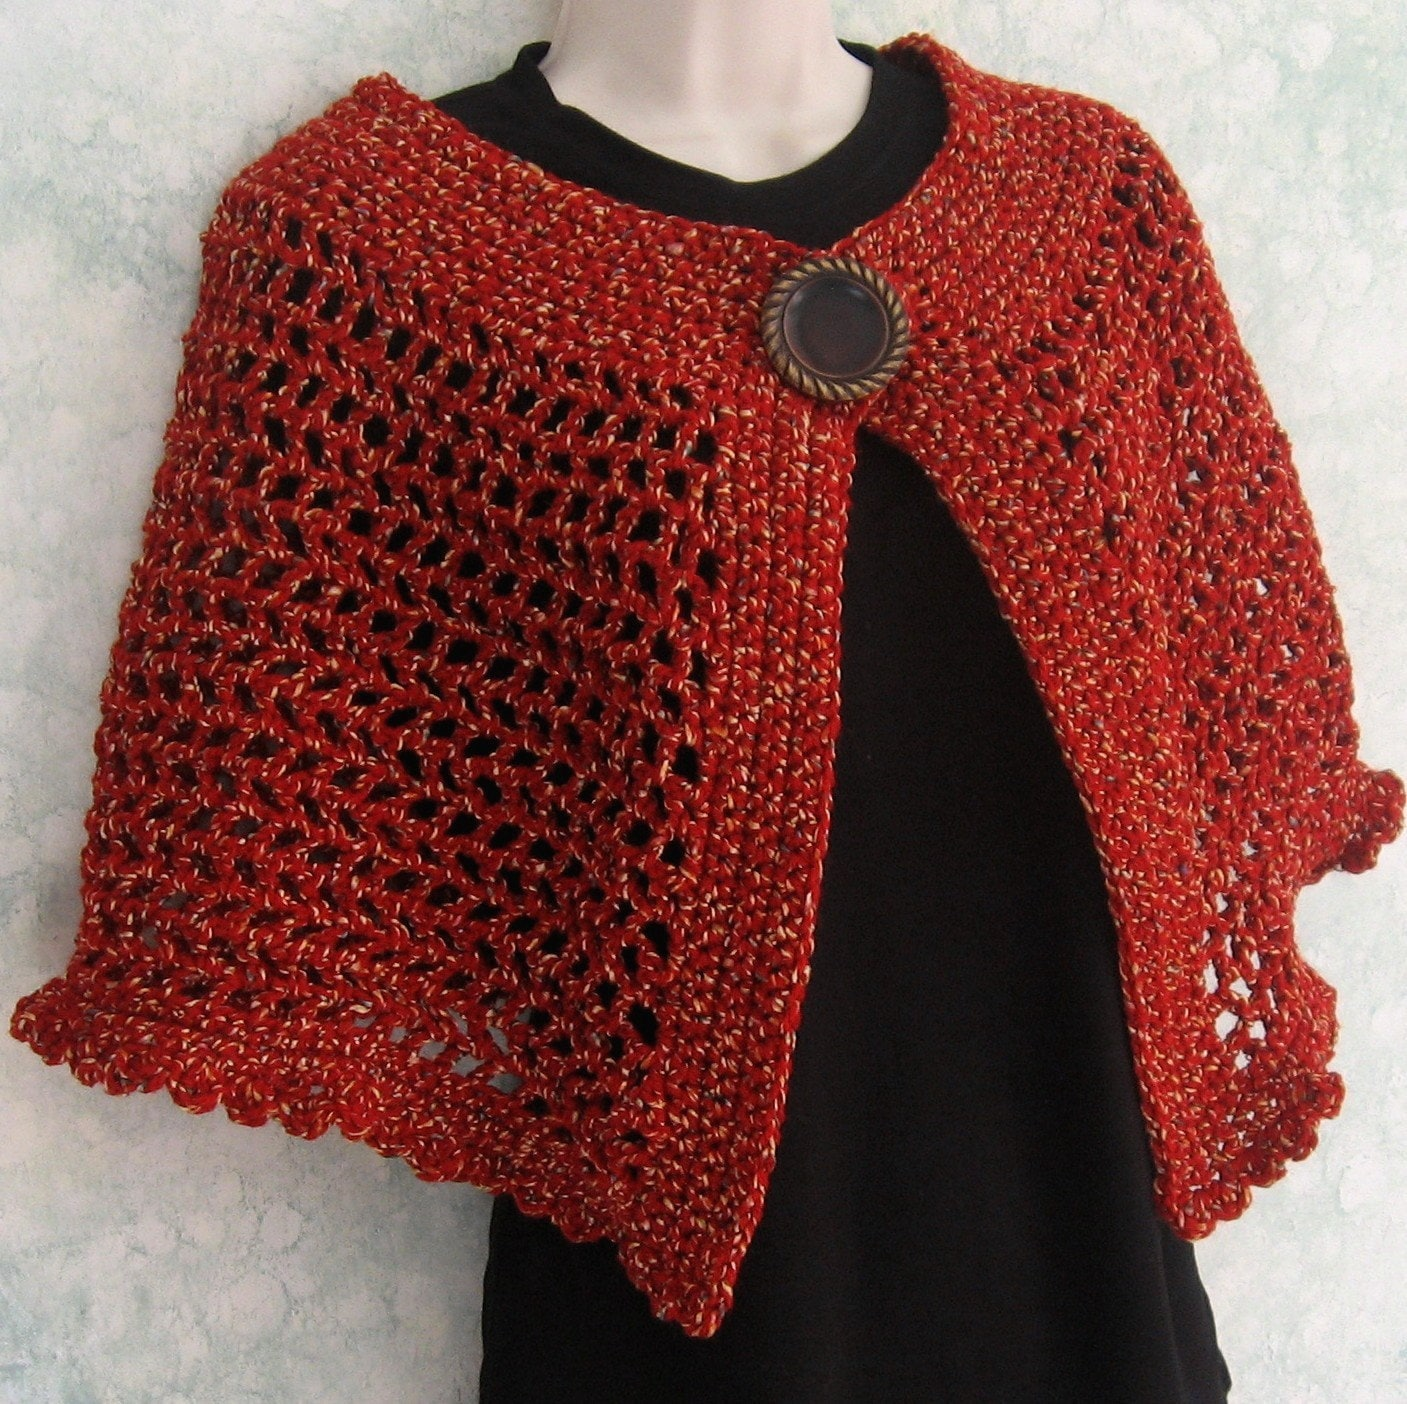 Crochet Patterns Capes : Womens Crochet Cape Pattern PDF Easy To Make May by kalliedesigns